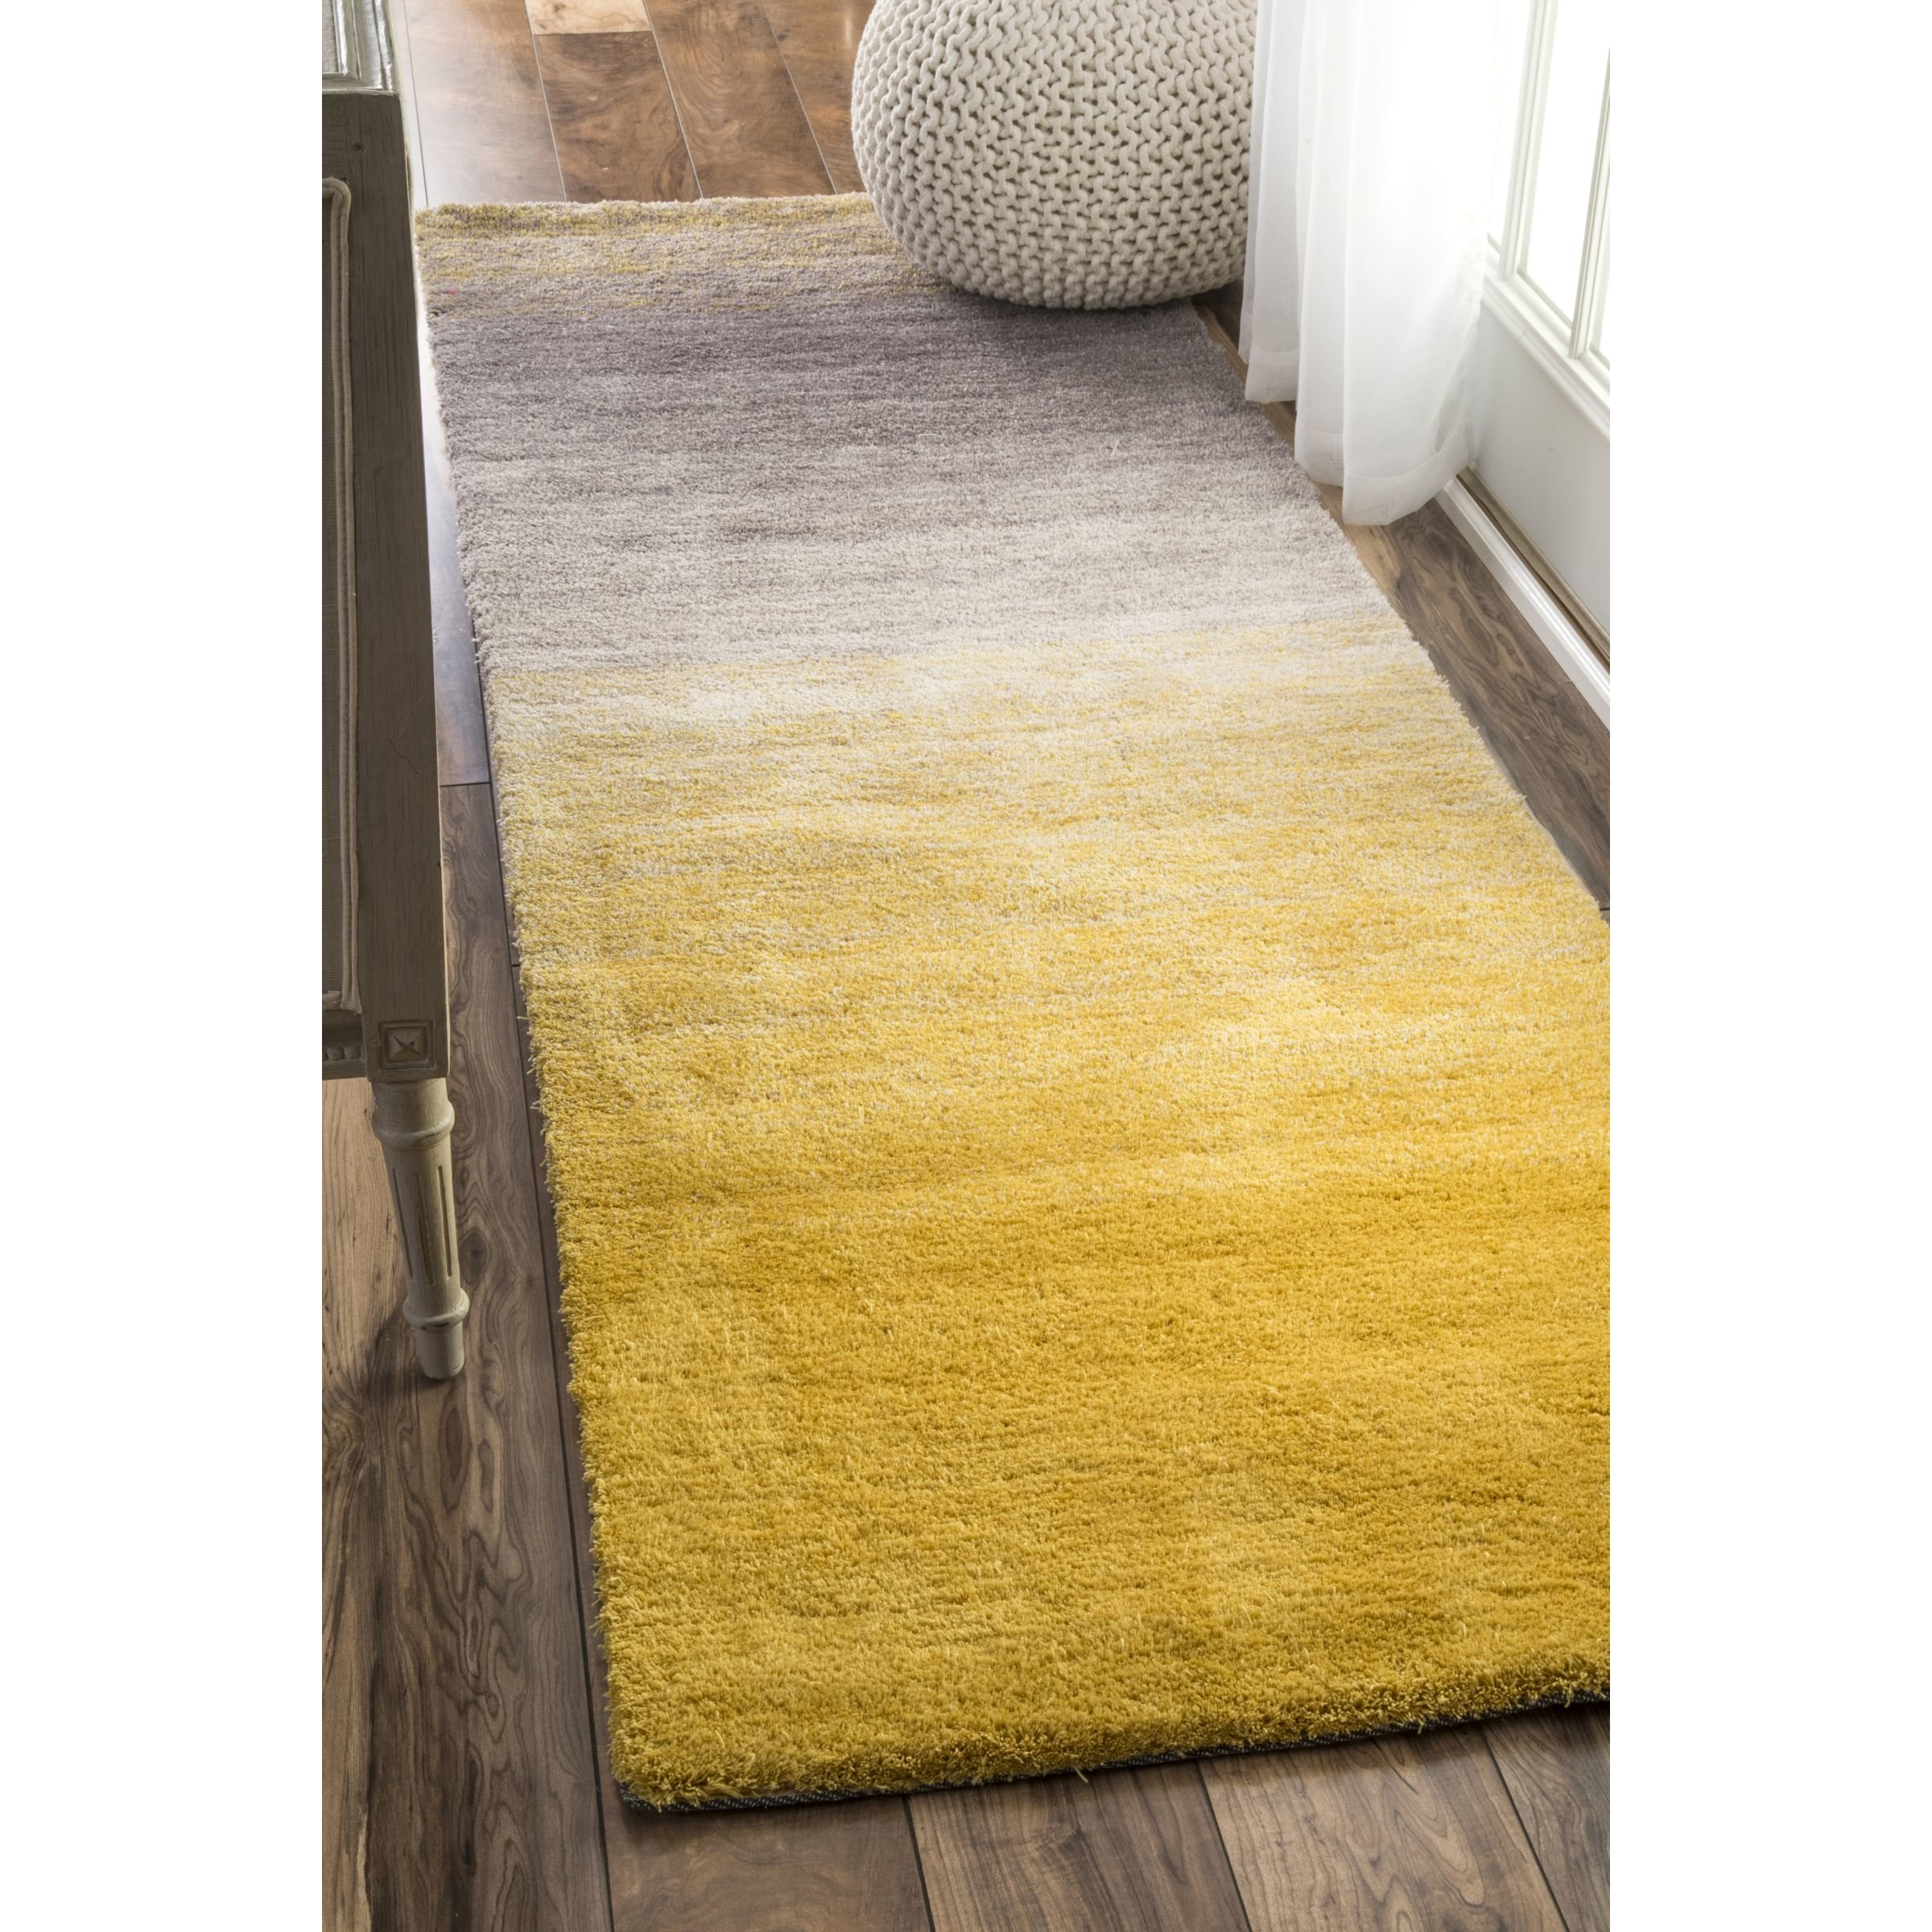 Chic Mercury Rowu0026reg; Bier Sion Yellow Area Rug mustard yellow area rug